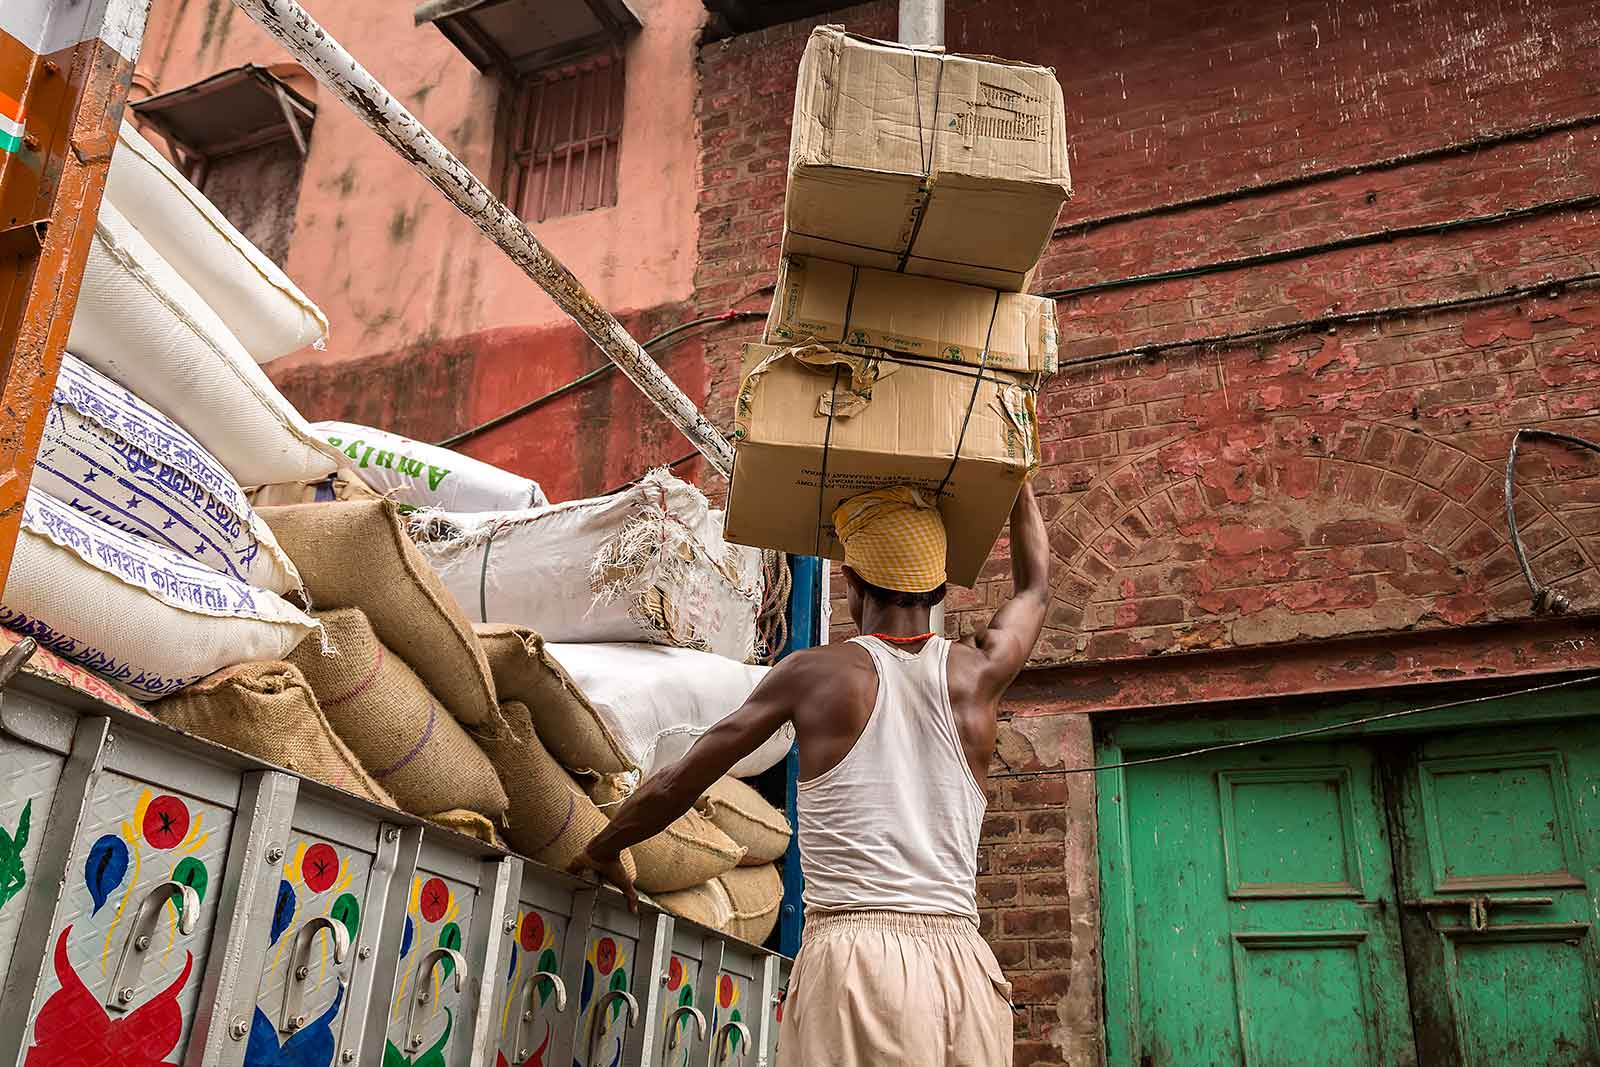 Unloading a truck at Mechua Market in Kolkata, India.